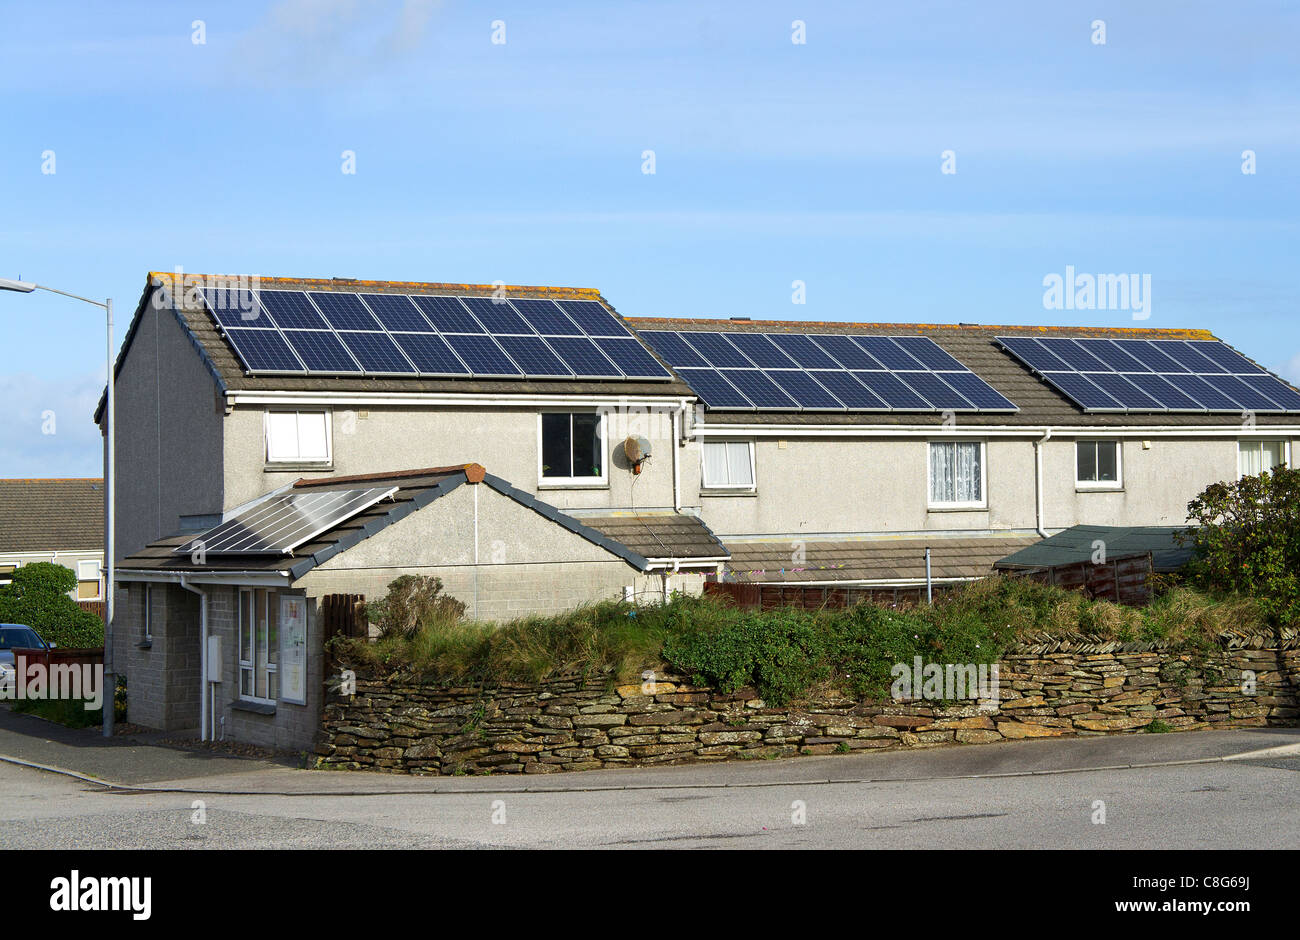 solar panels fitted on council houses in redruth, cornwall, uk Stock Photo